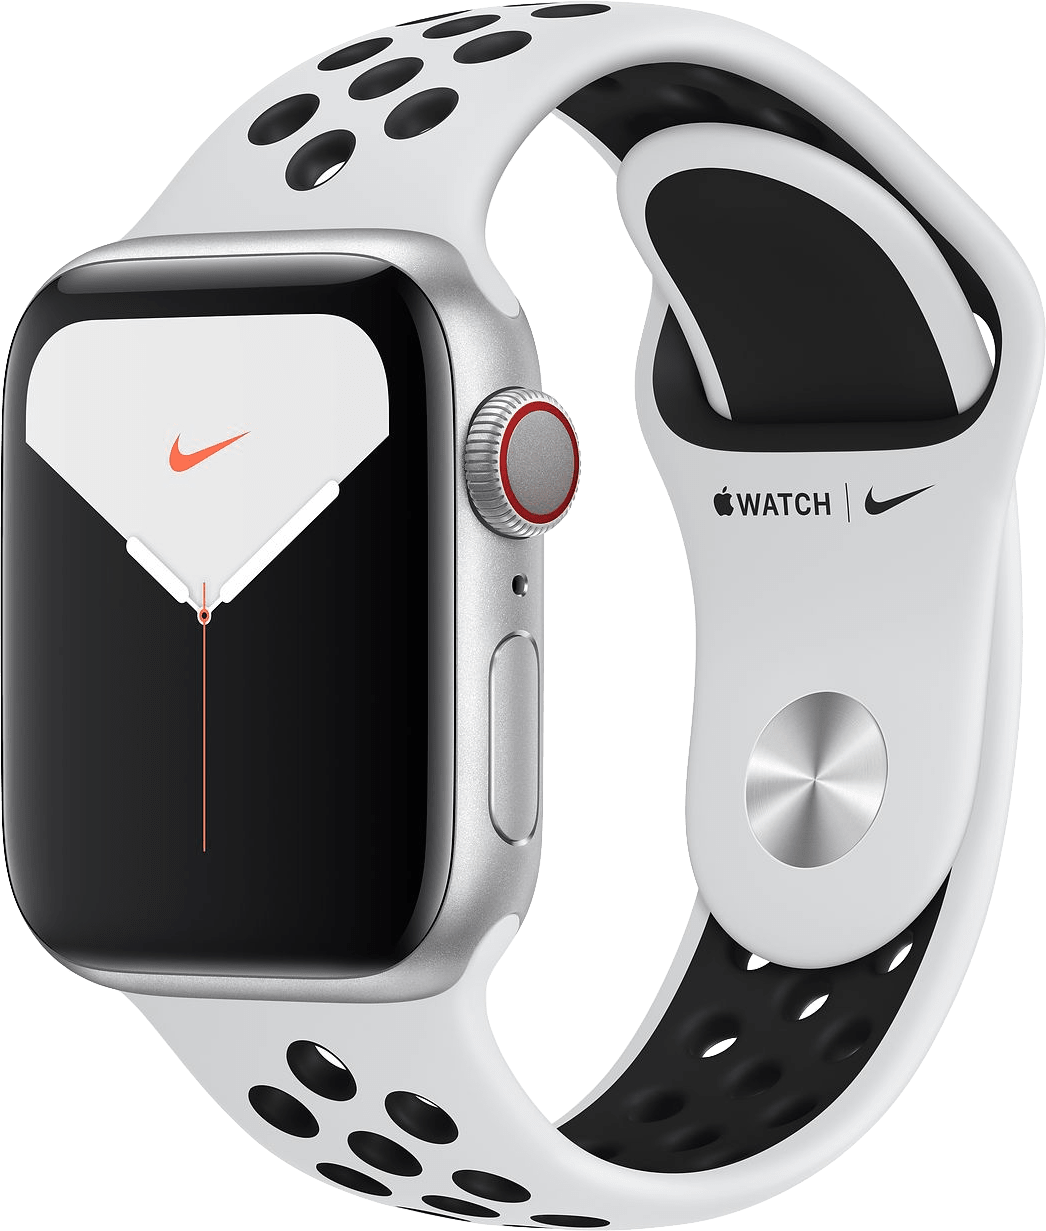 Reines Platin / Schwarz Apple Watch Nike Series 5 GPS + Cellular, 40mm.2